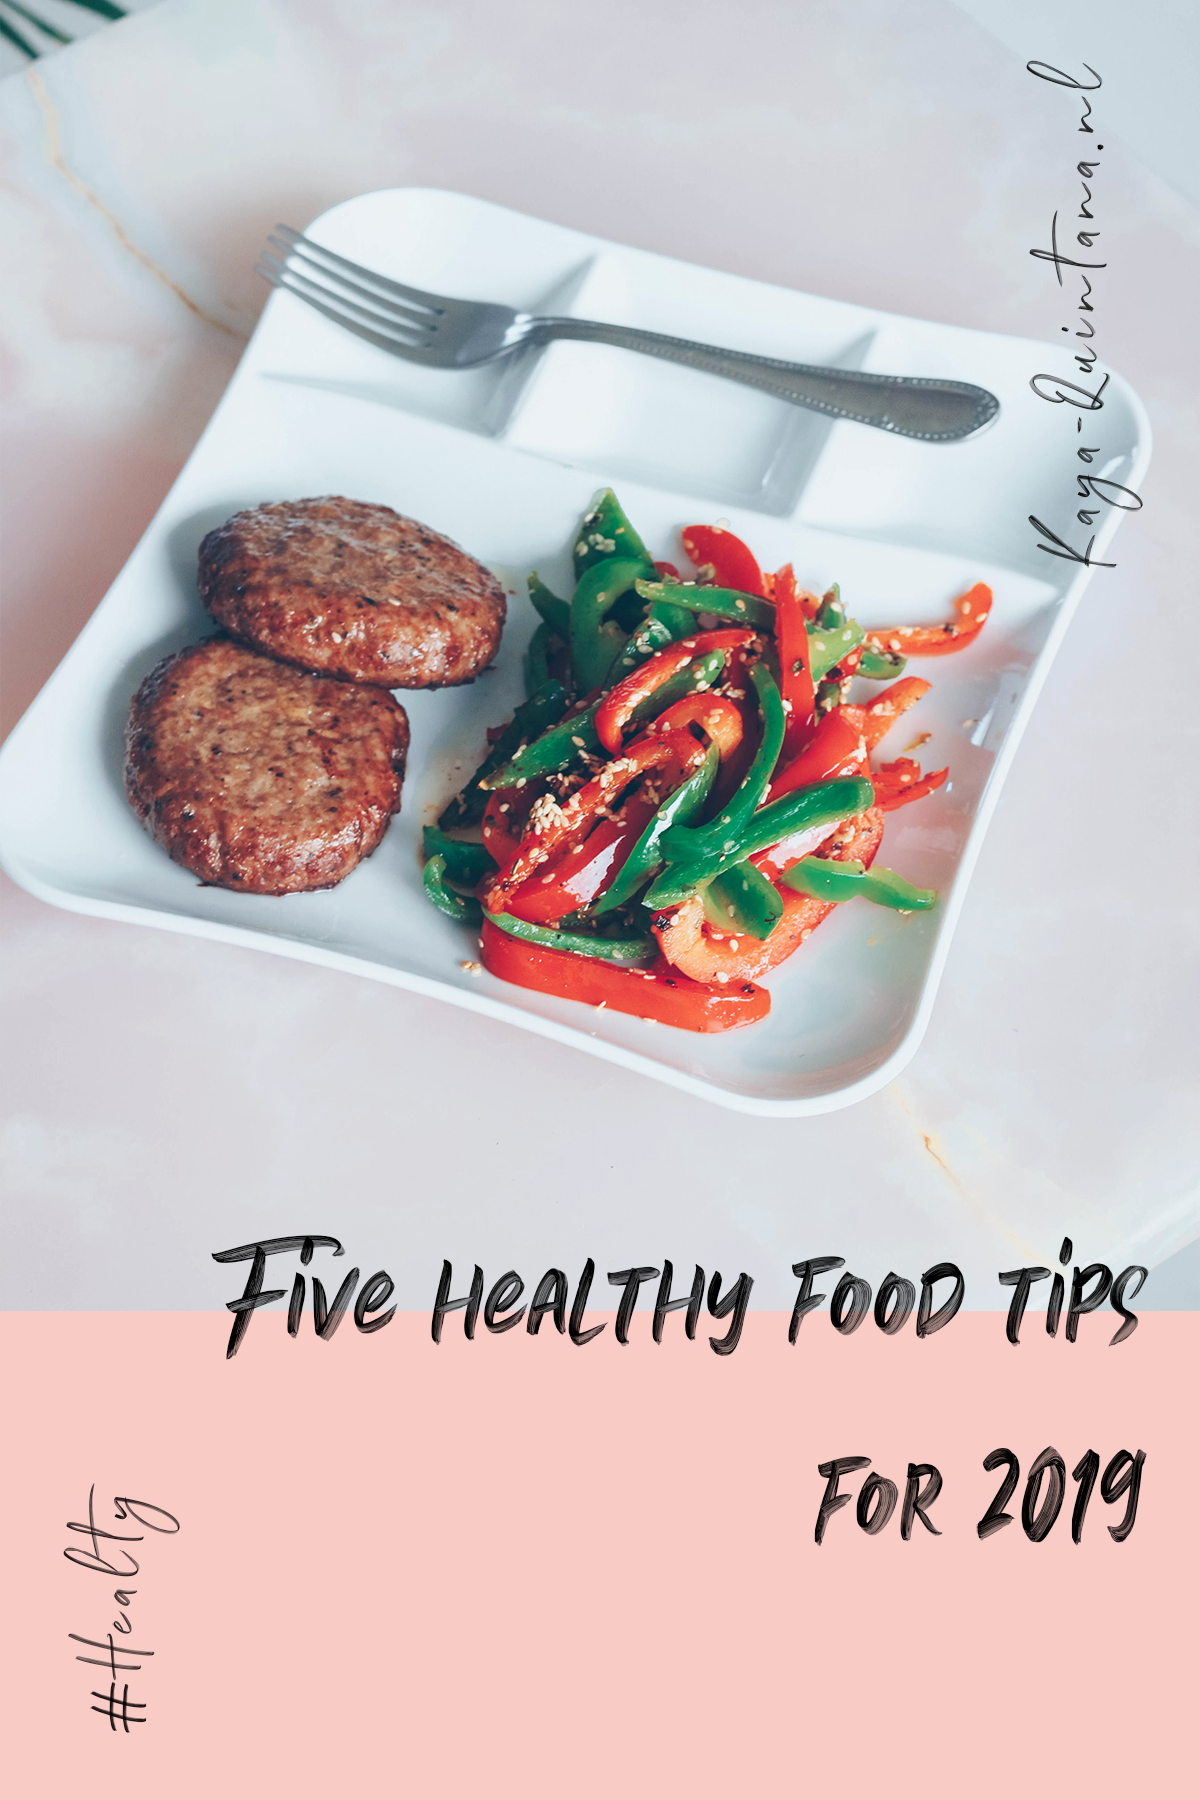 Five healthy food tips for 2019